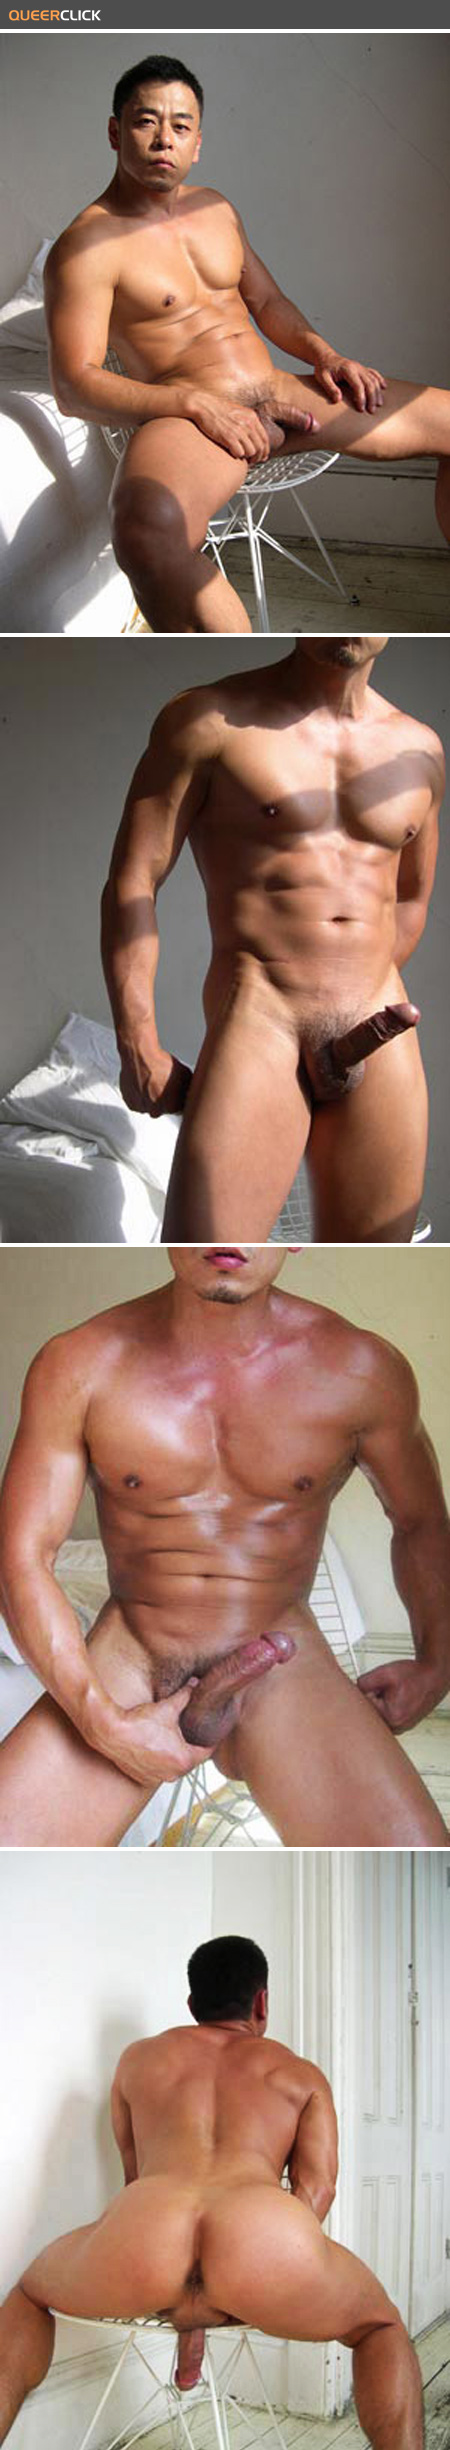 gay sex video clips free